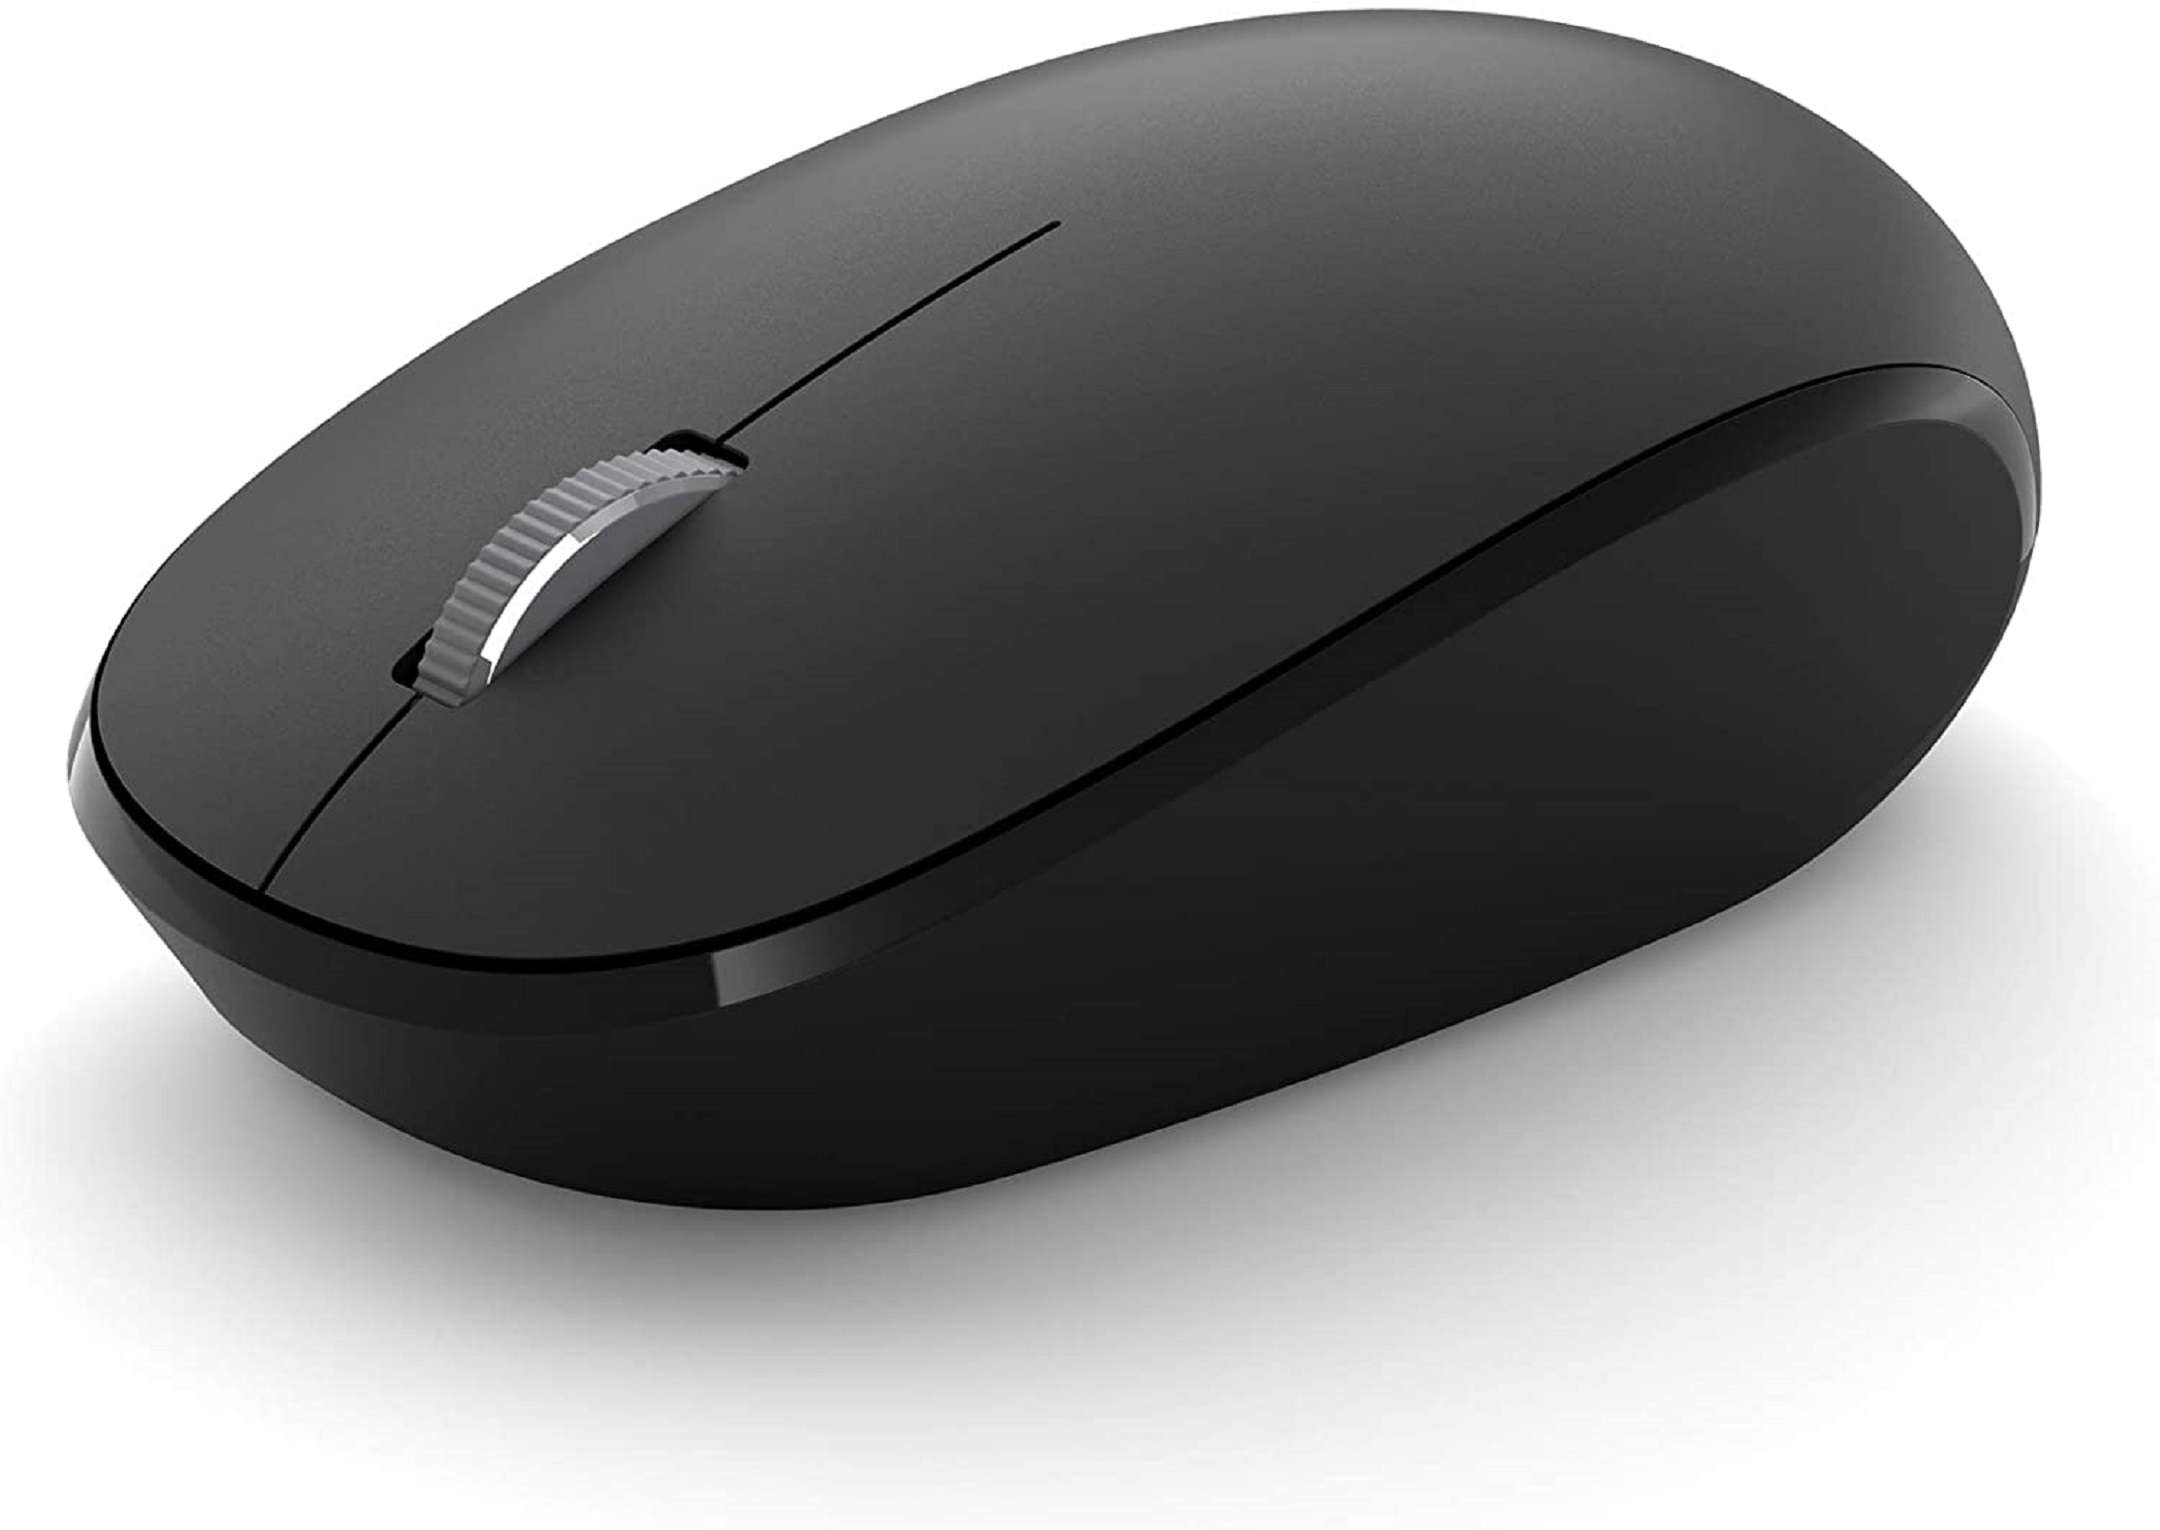 Microsoft Bluetooth Mouse for only € 12.99 on Amazon